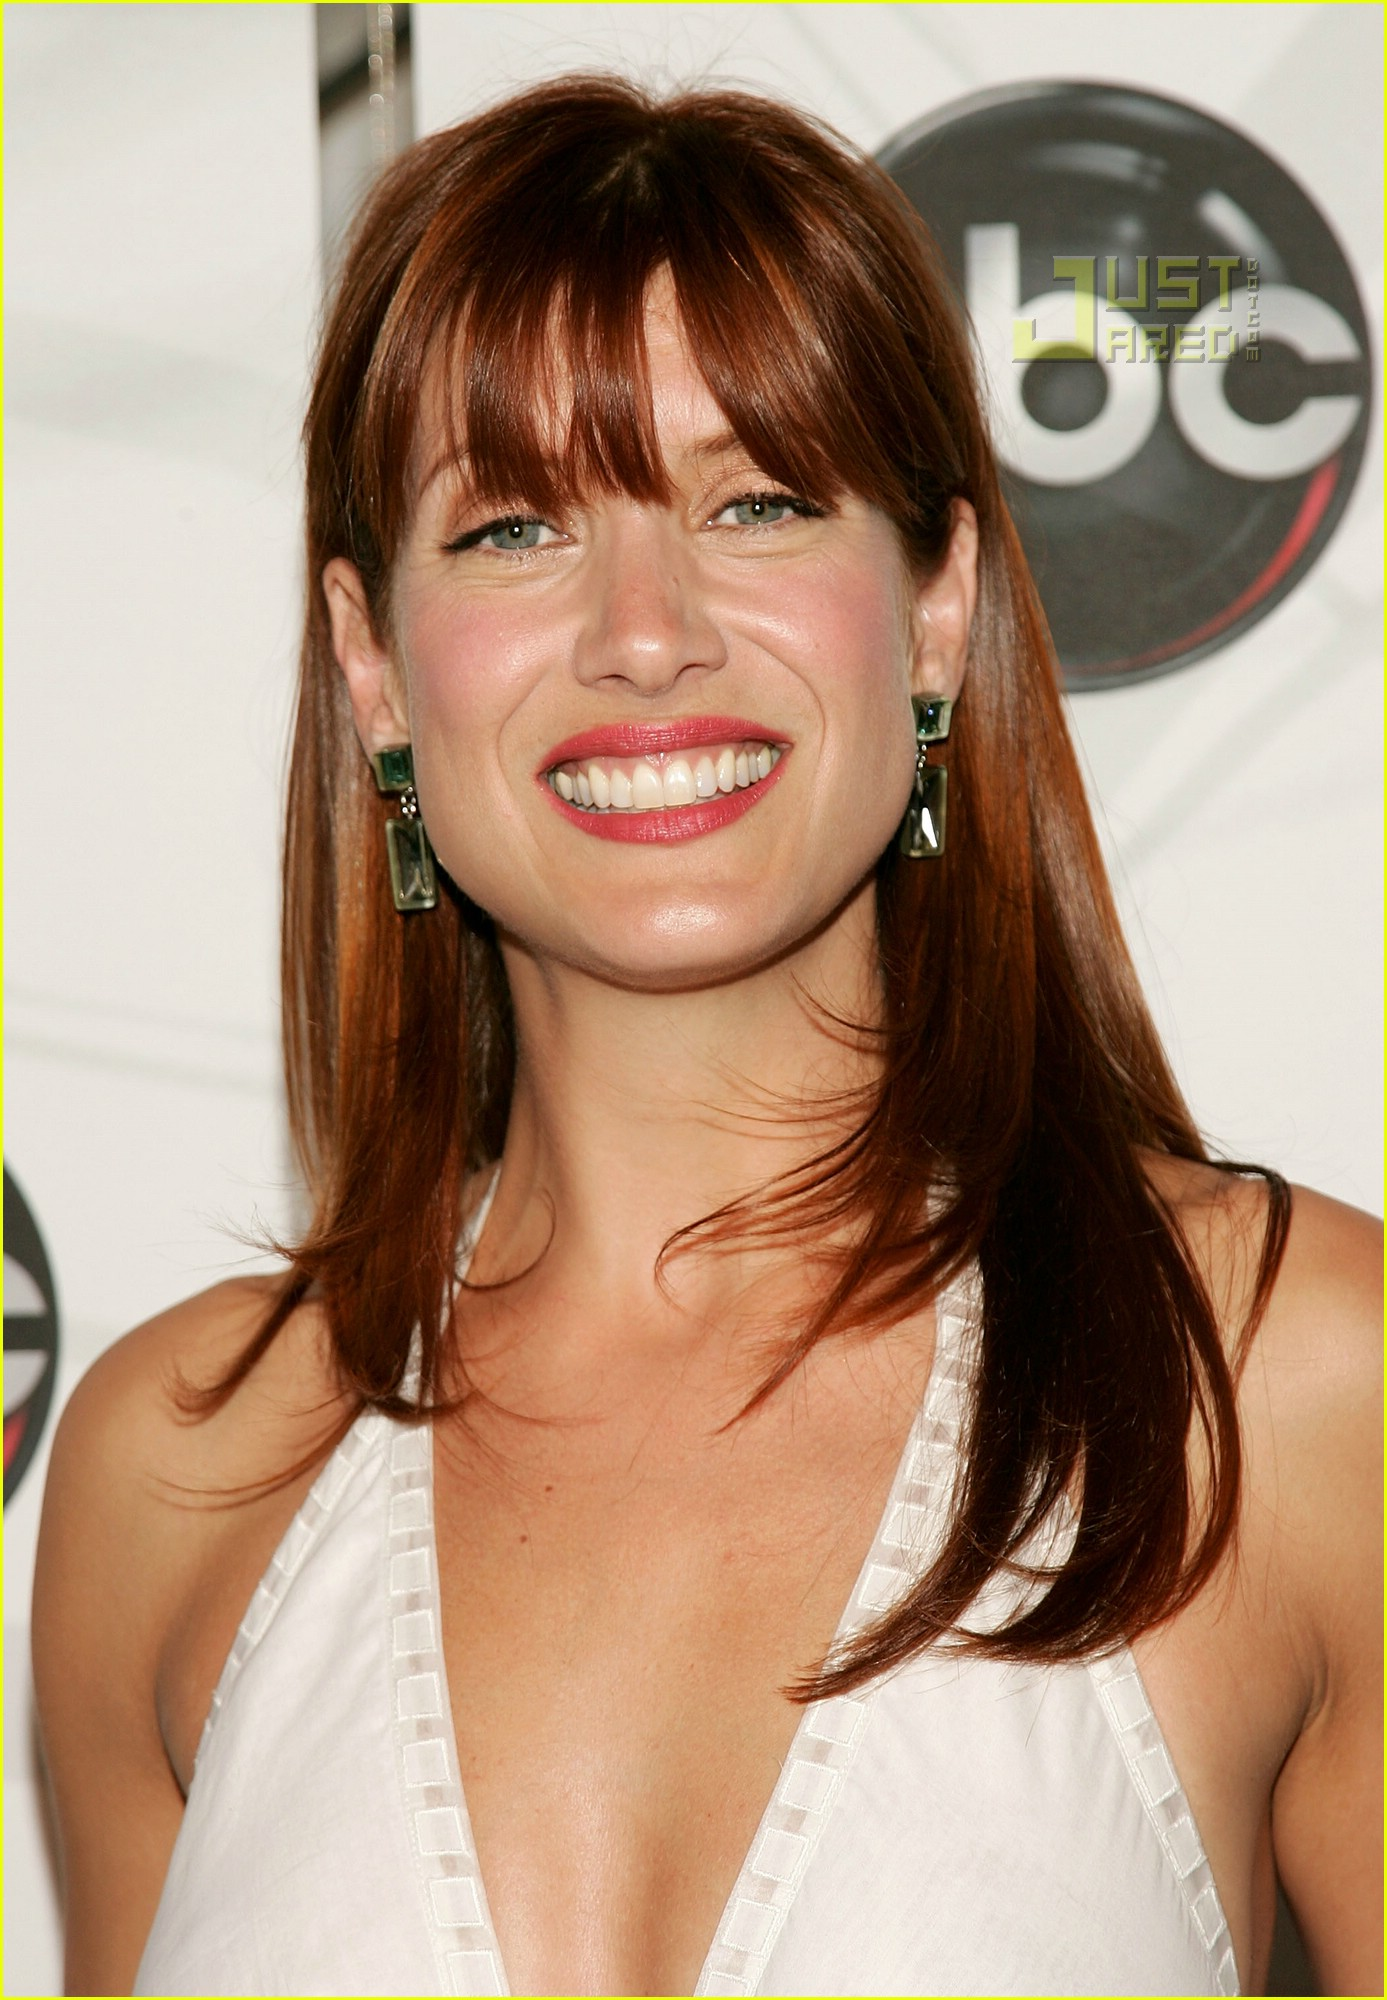 Discussion on this topic: Matilda Thorpe, kate-walsh-actress/